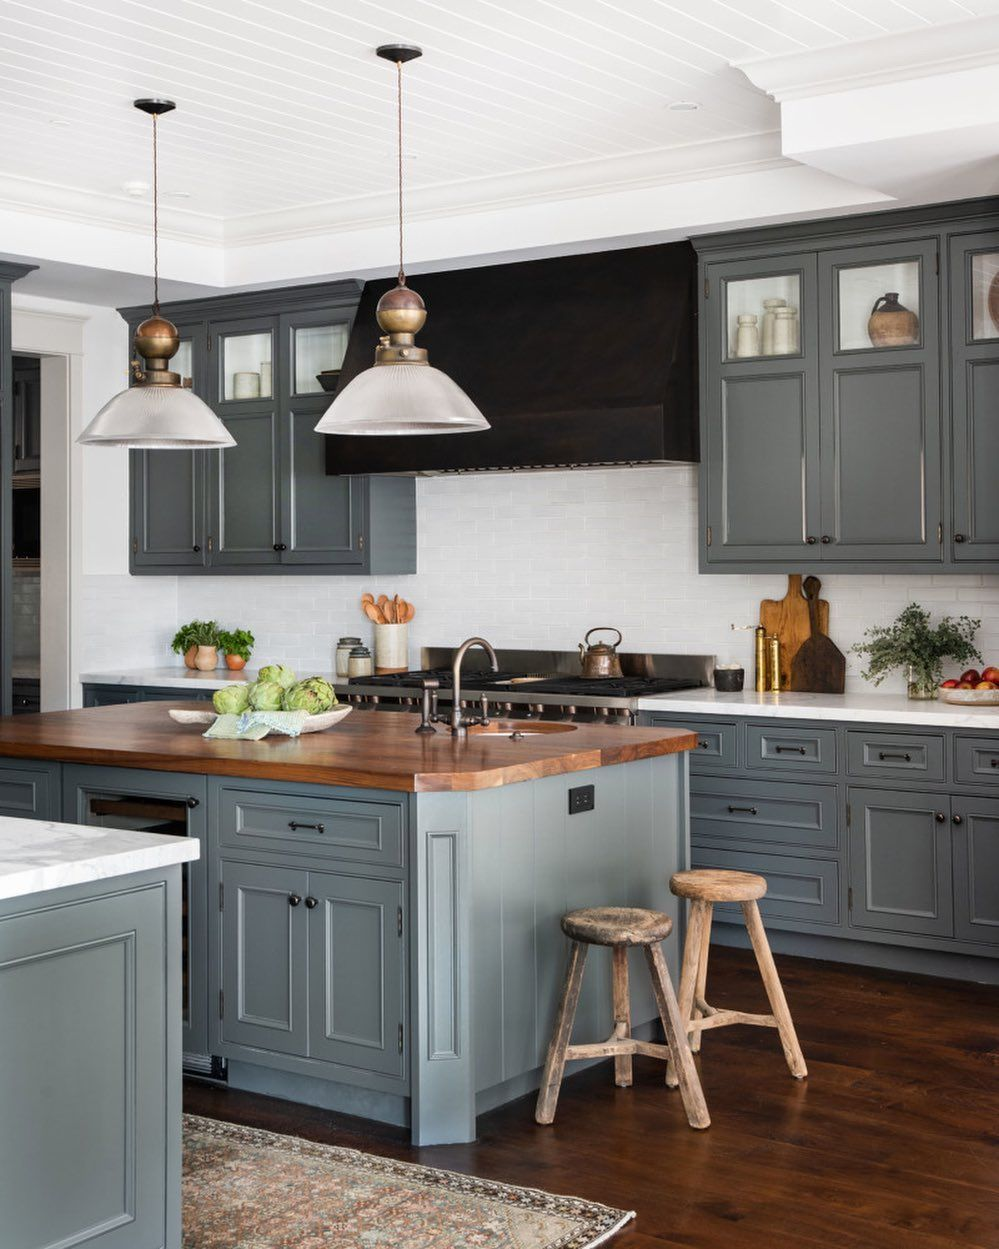 "Kitchen Interior Design Ideas Classic: Shoppe Amber Interiors On Instagram: ""Dark Meets Light And"